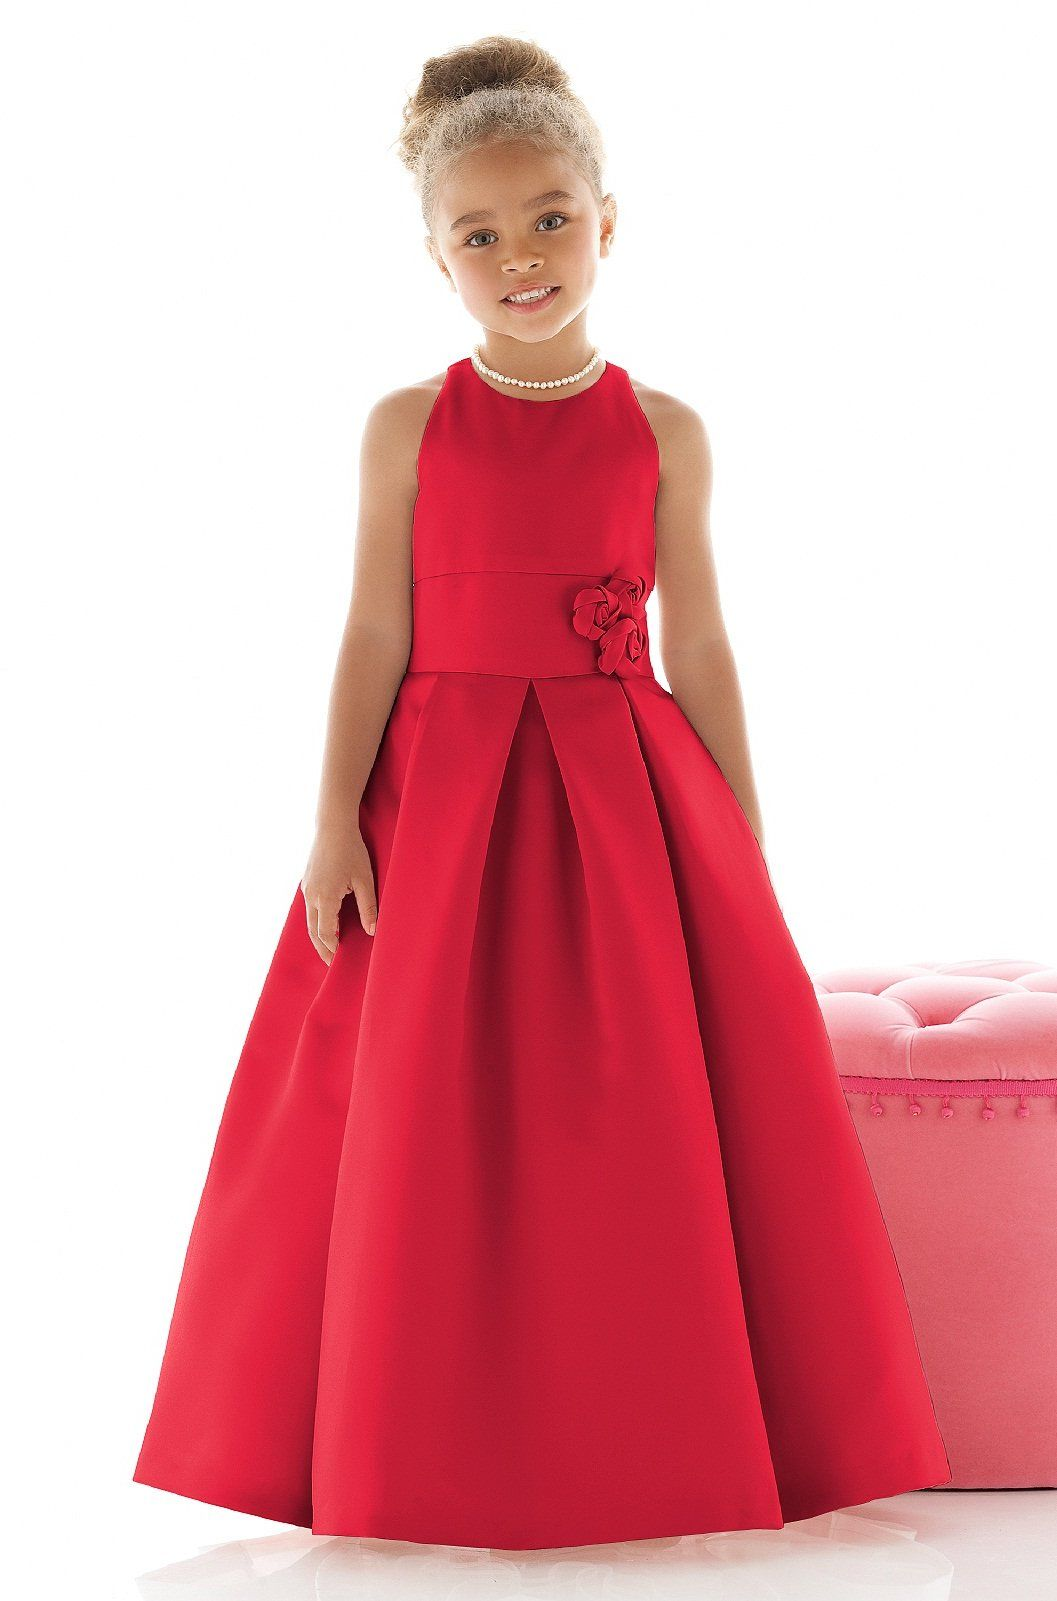 Flower girl dress wedding bridemaids flowergirls boys for Black floral dress to a wedding